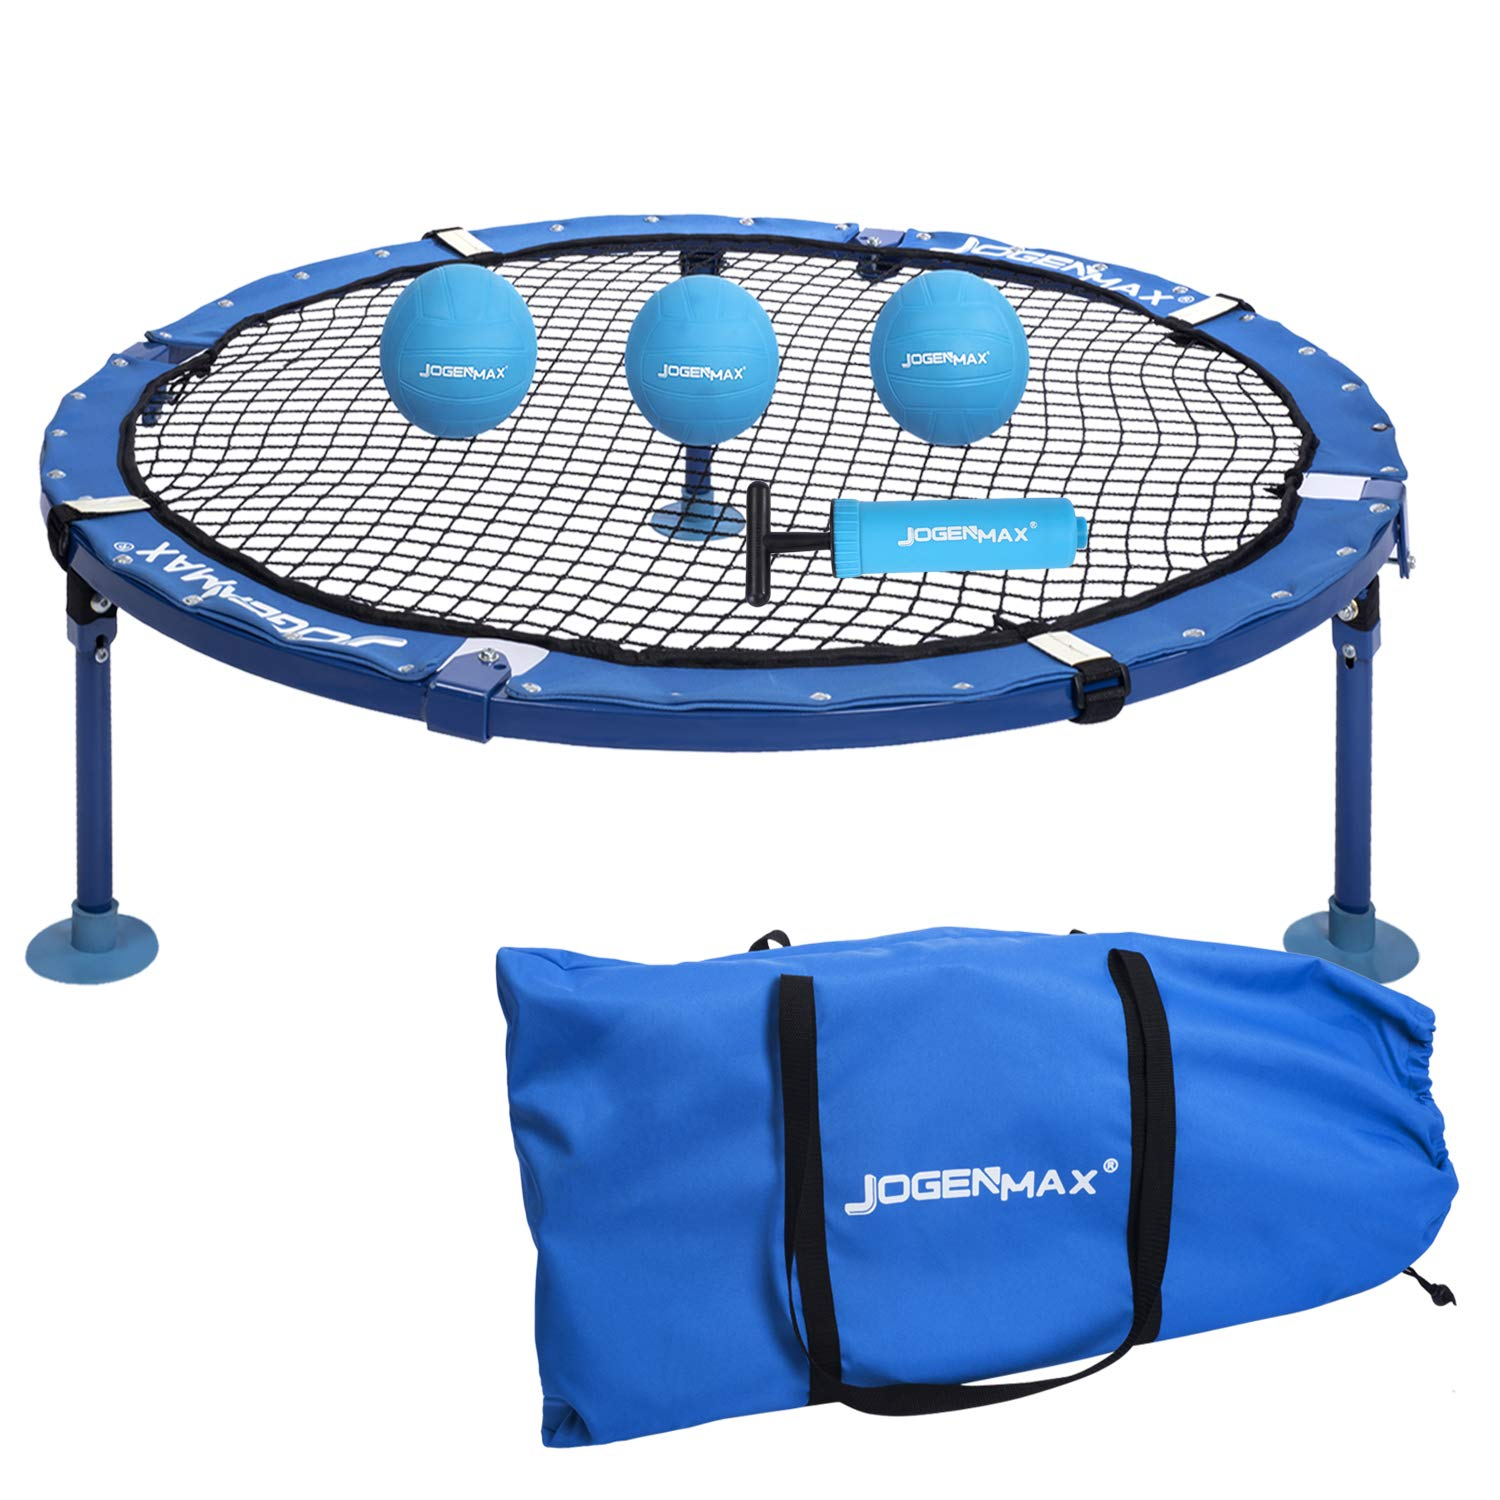 Jogenmax Spike Battle Ball Game Nets,Fully Foldable, Includes 3 Balls,Drawstring Bag,Played Outdoors, Indoors, Lawn, Yard, Beach, Tailgate, Park, for Boys, Girls, Teens, Adults, Family